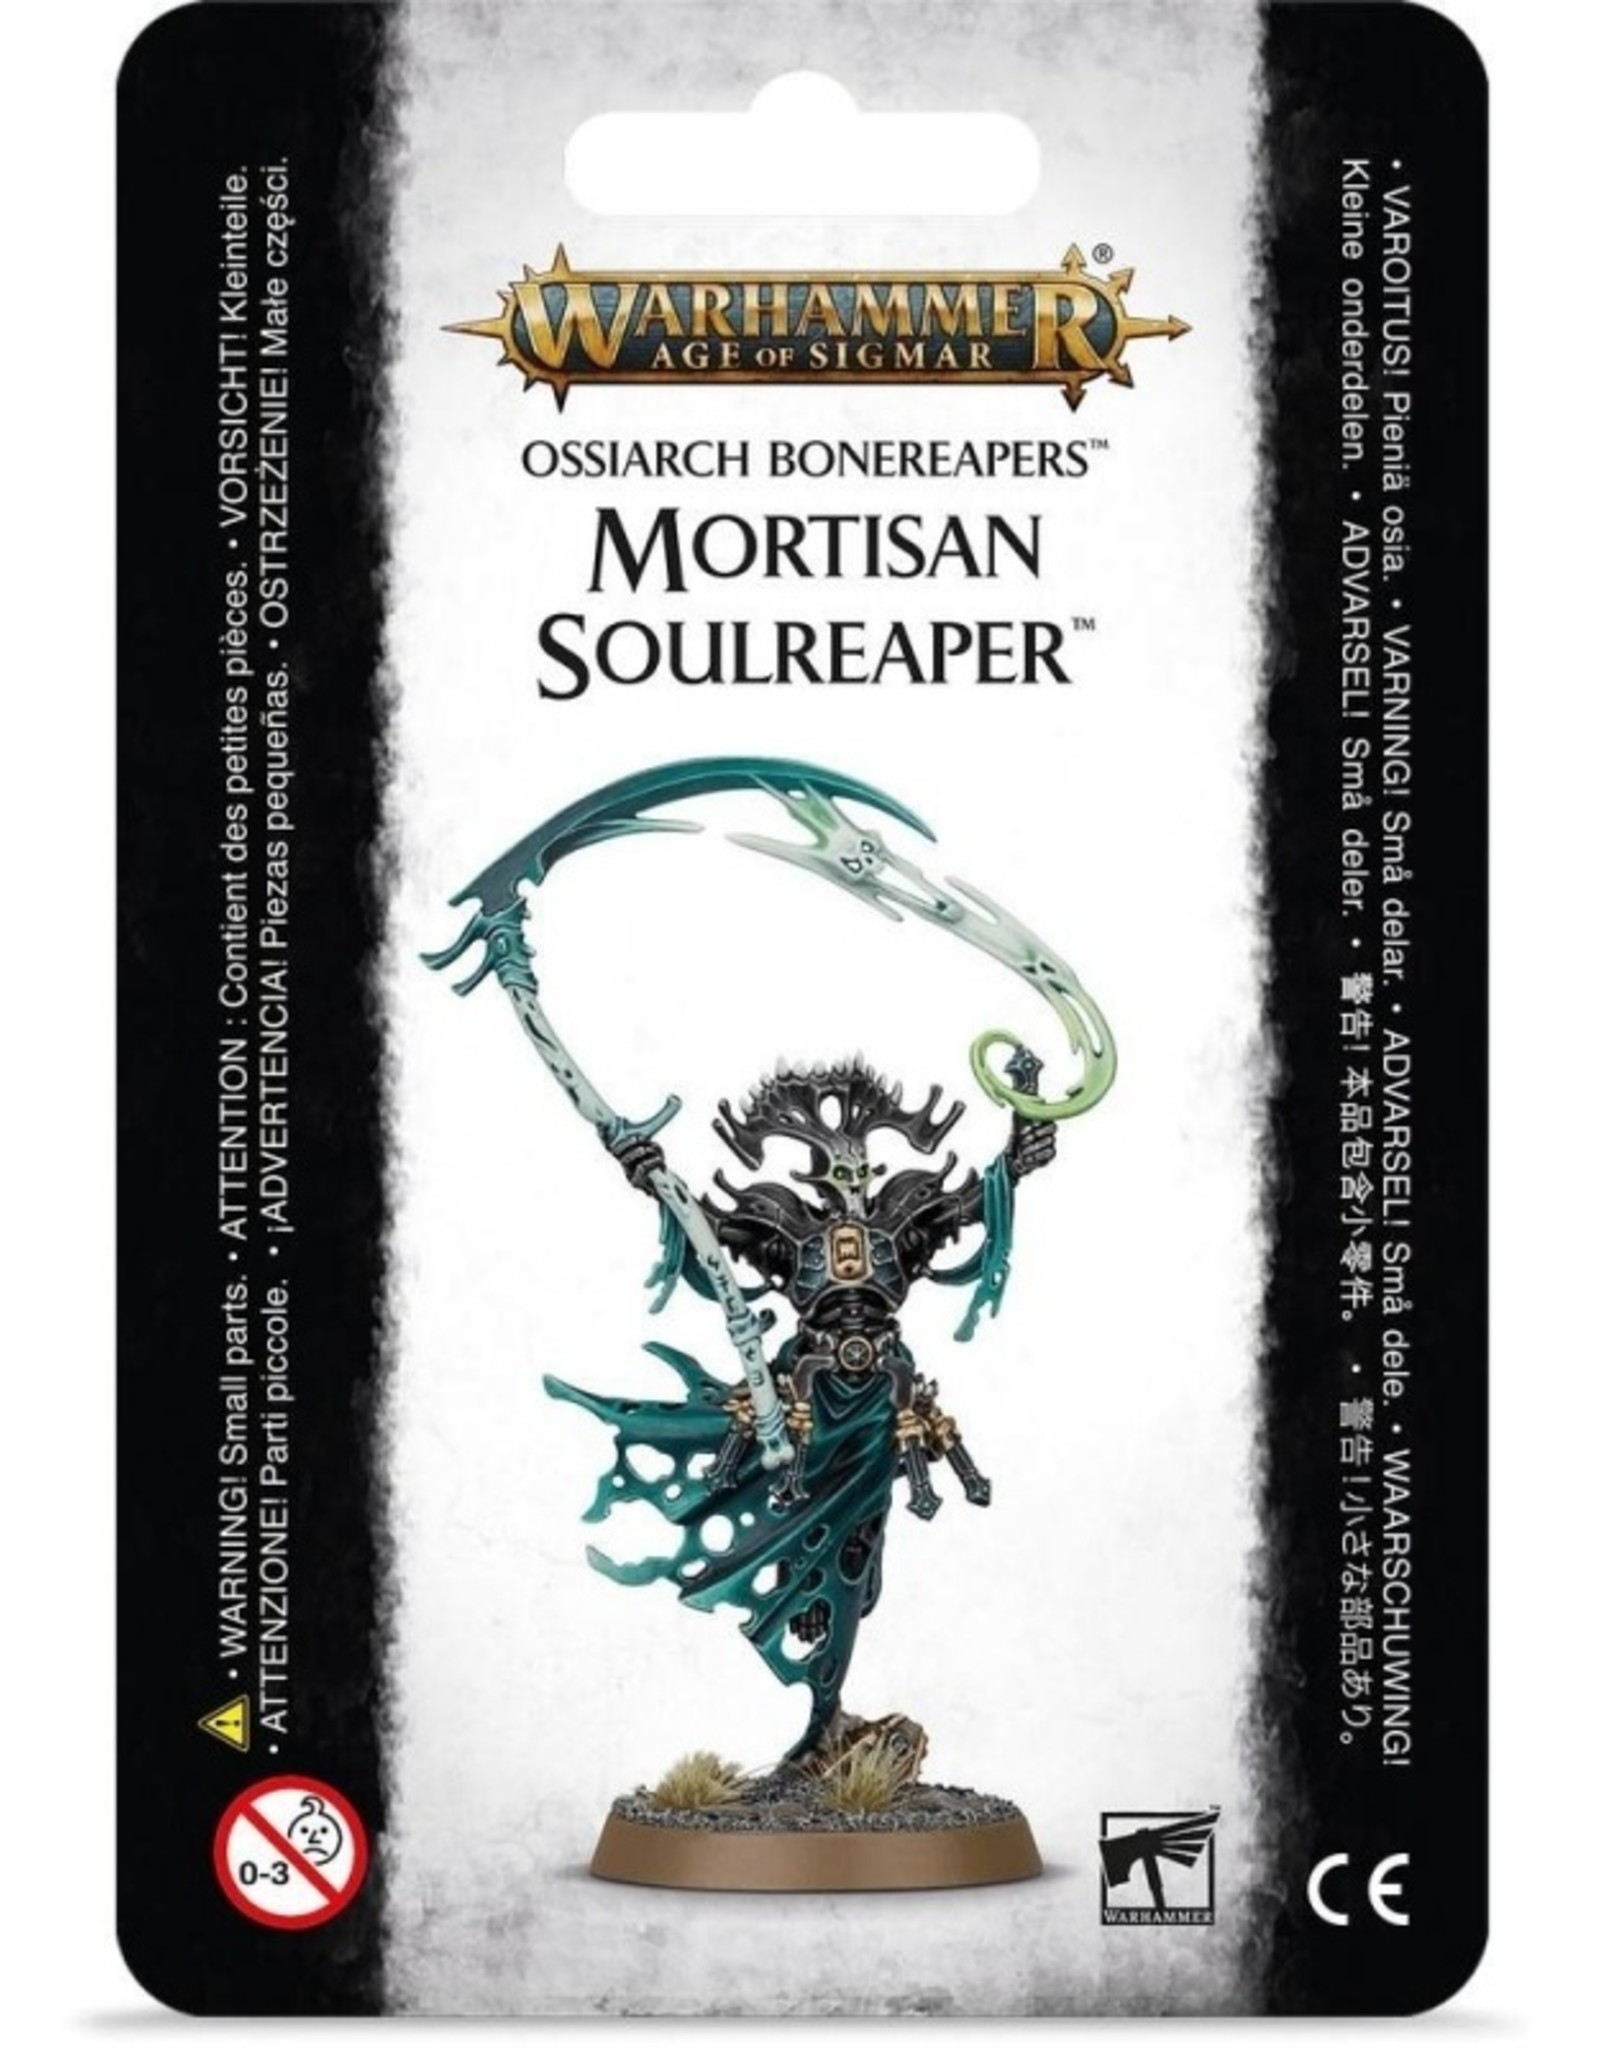 Games Workshop Ossiarch Bonereapers Mortisan Soulreaper